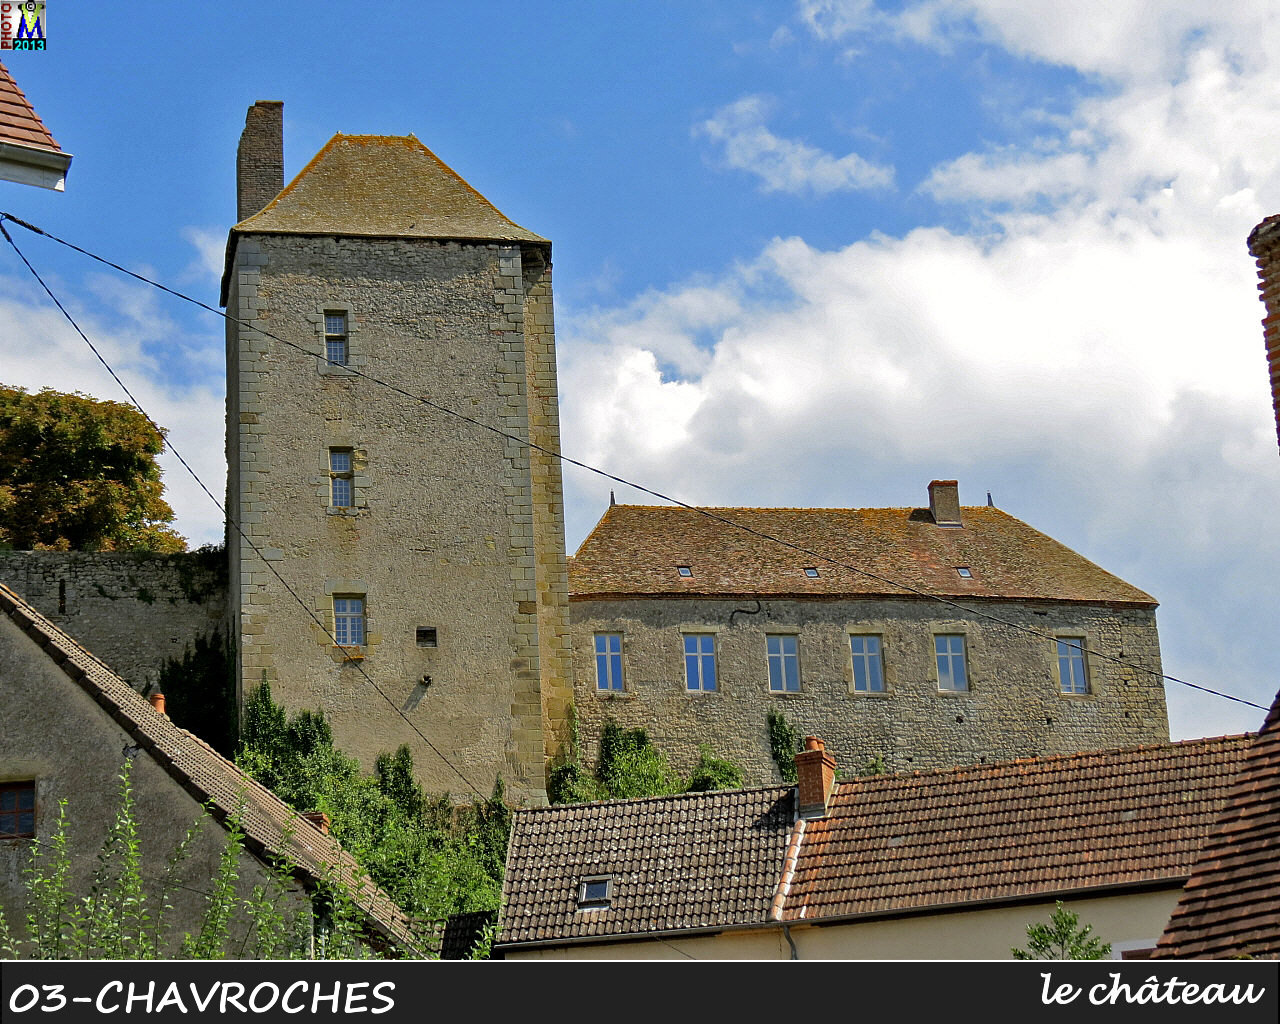 03CHAVROCHES_chateau_102.jpg